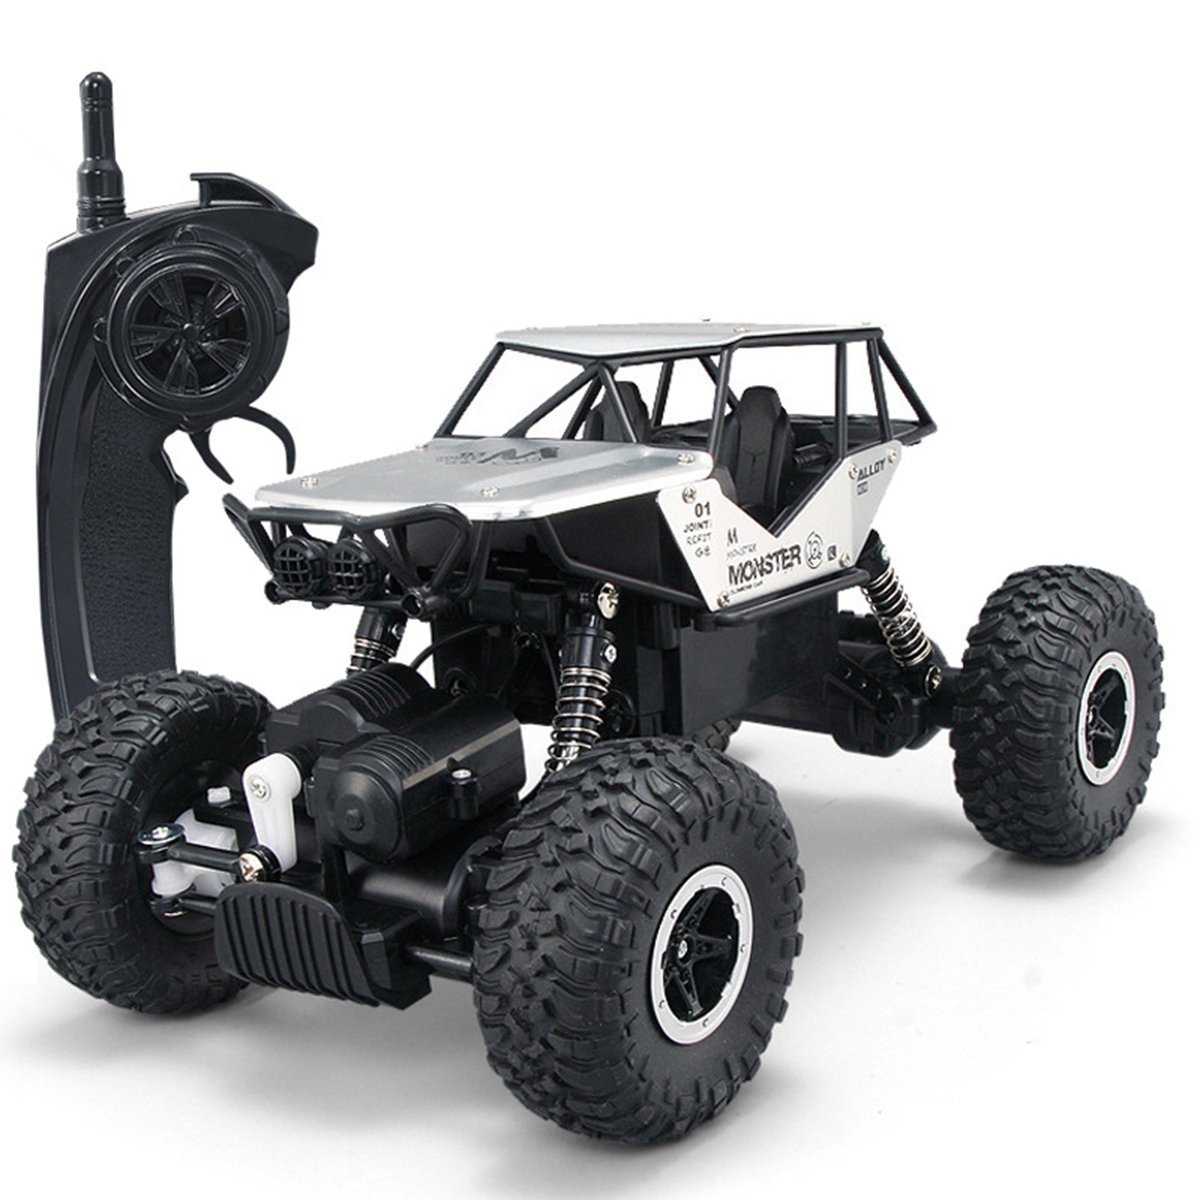 SZJJX RC Cars Off-Road 4WD 2.4Ghz High Speed 14 Radio Remote Control Rock Vehicle Crawler Truck Racing Cars Electric Fast Race Buggy Hobby Car Silver